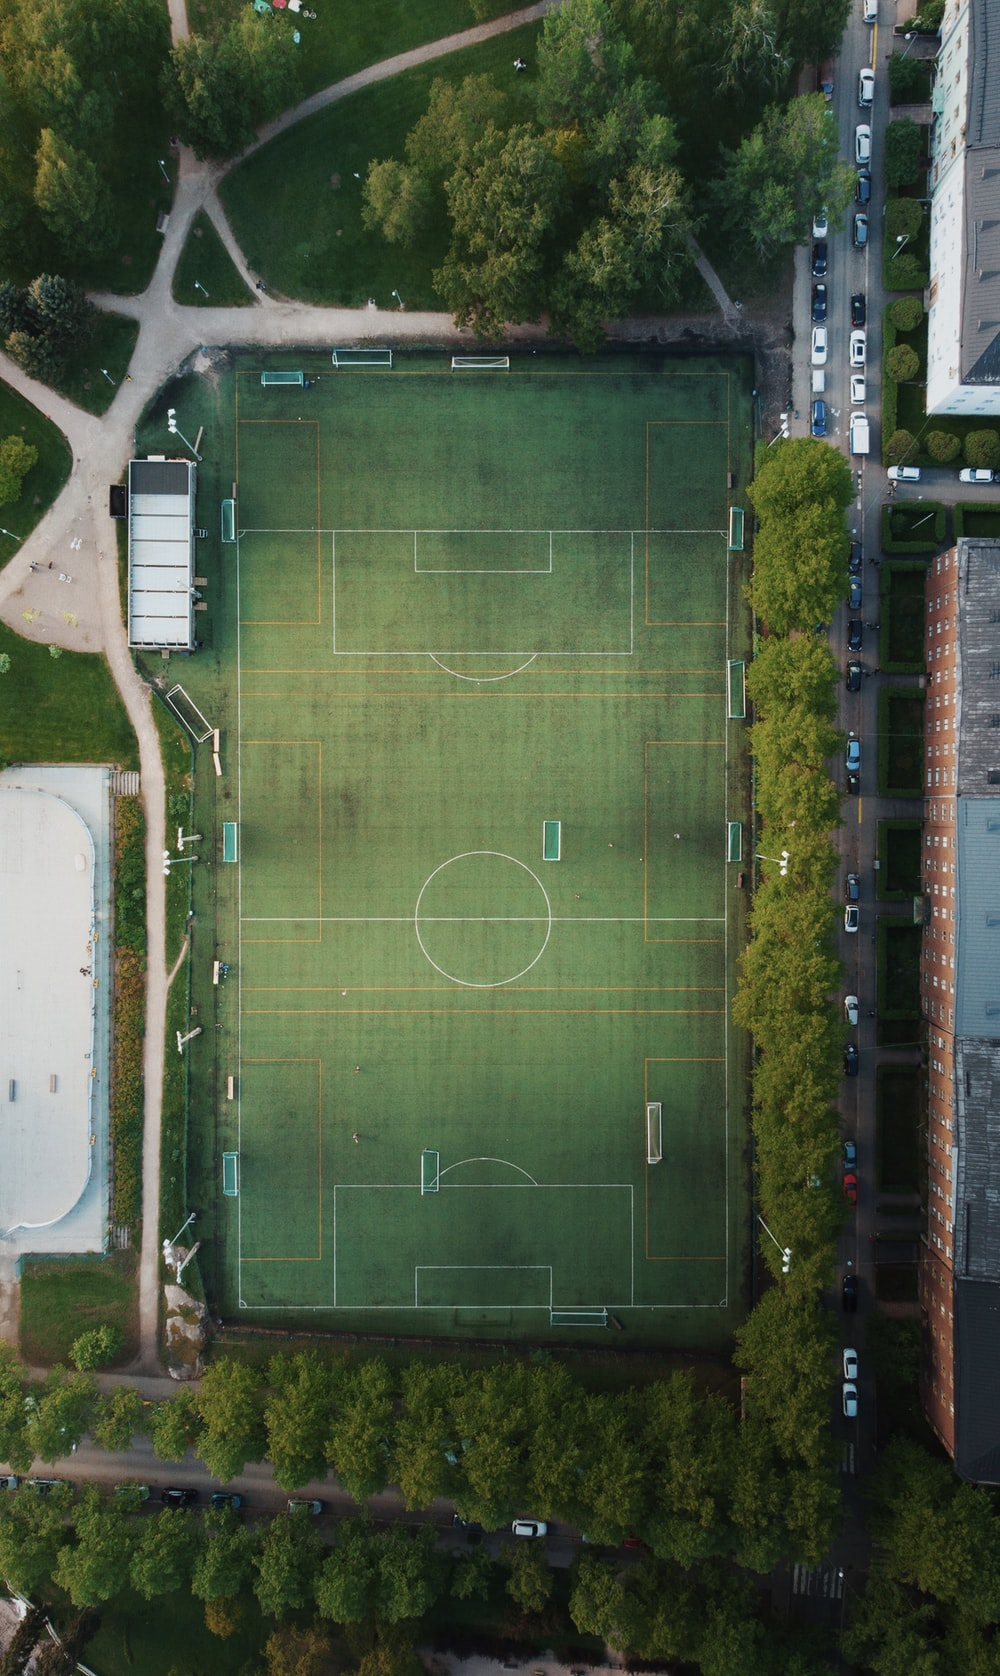 aerial view of soccer field during daytime